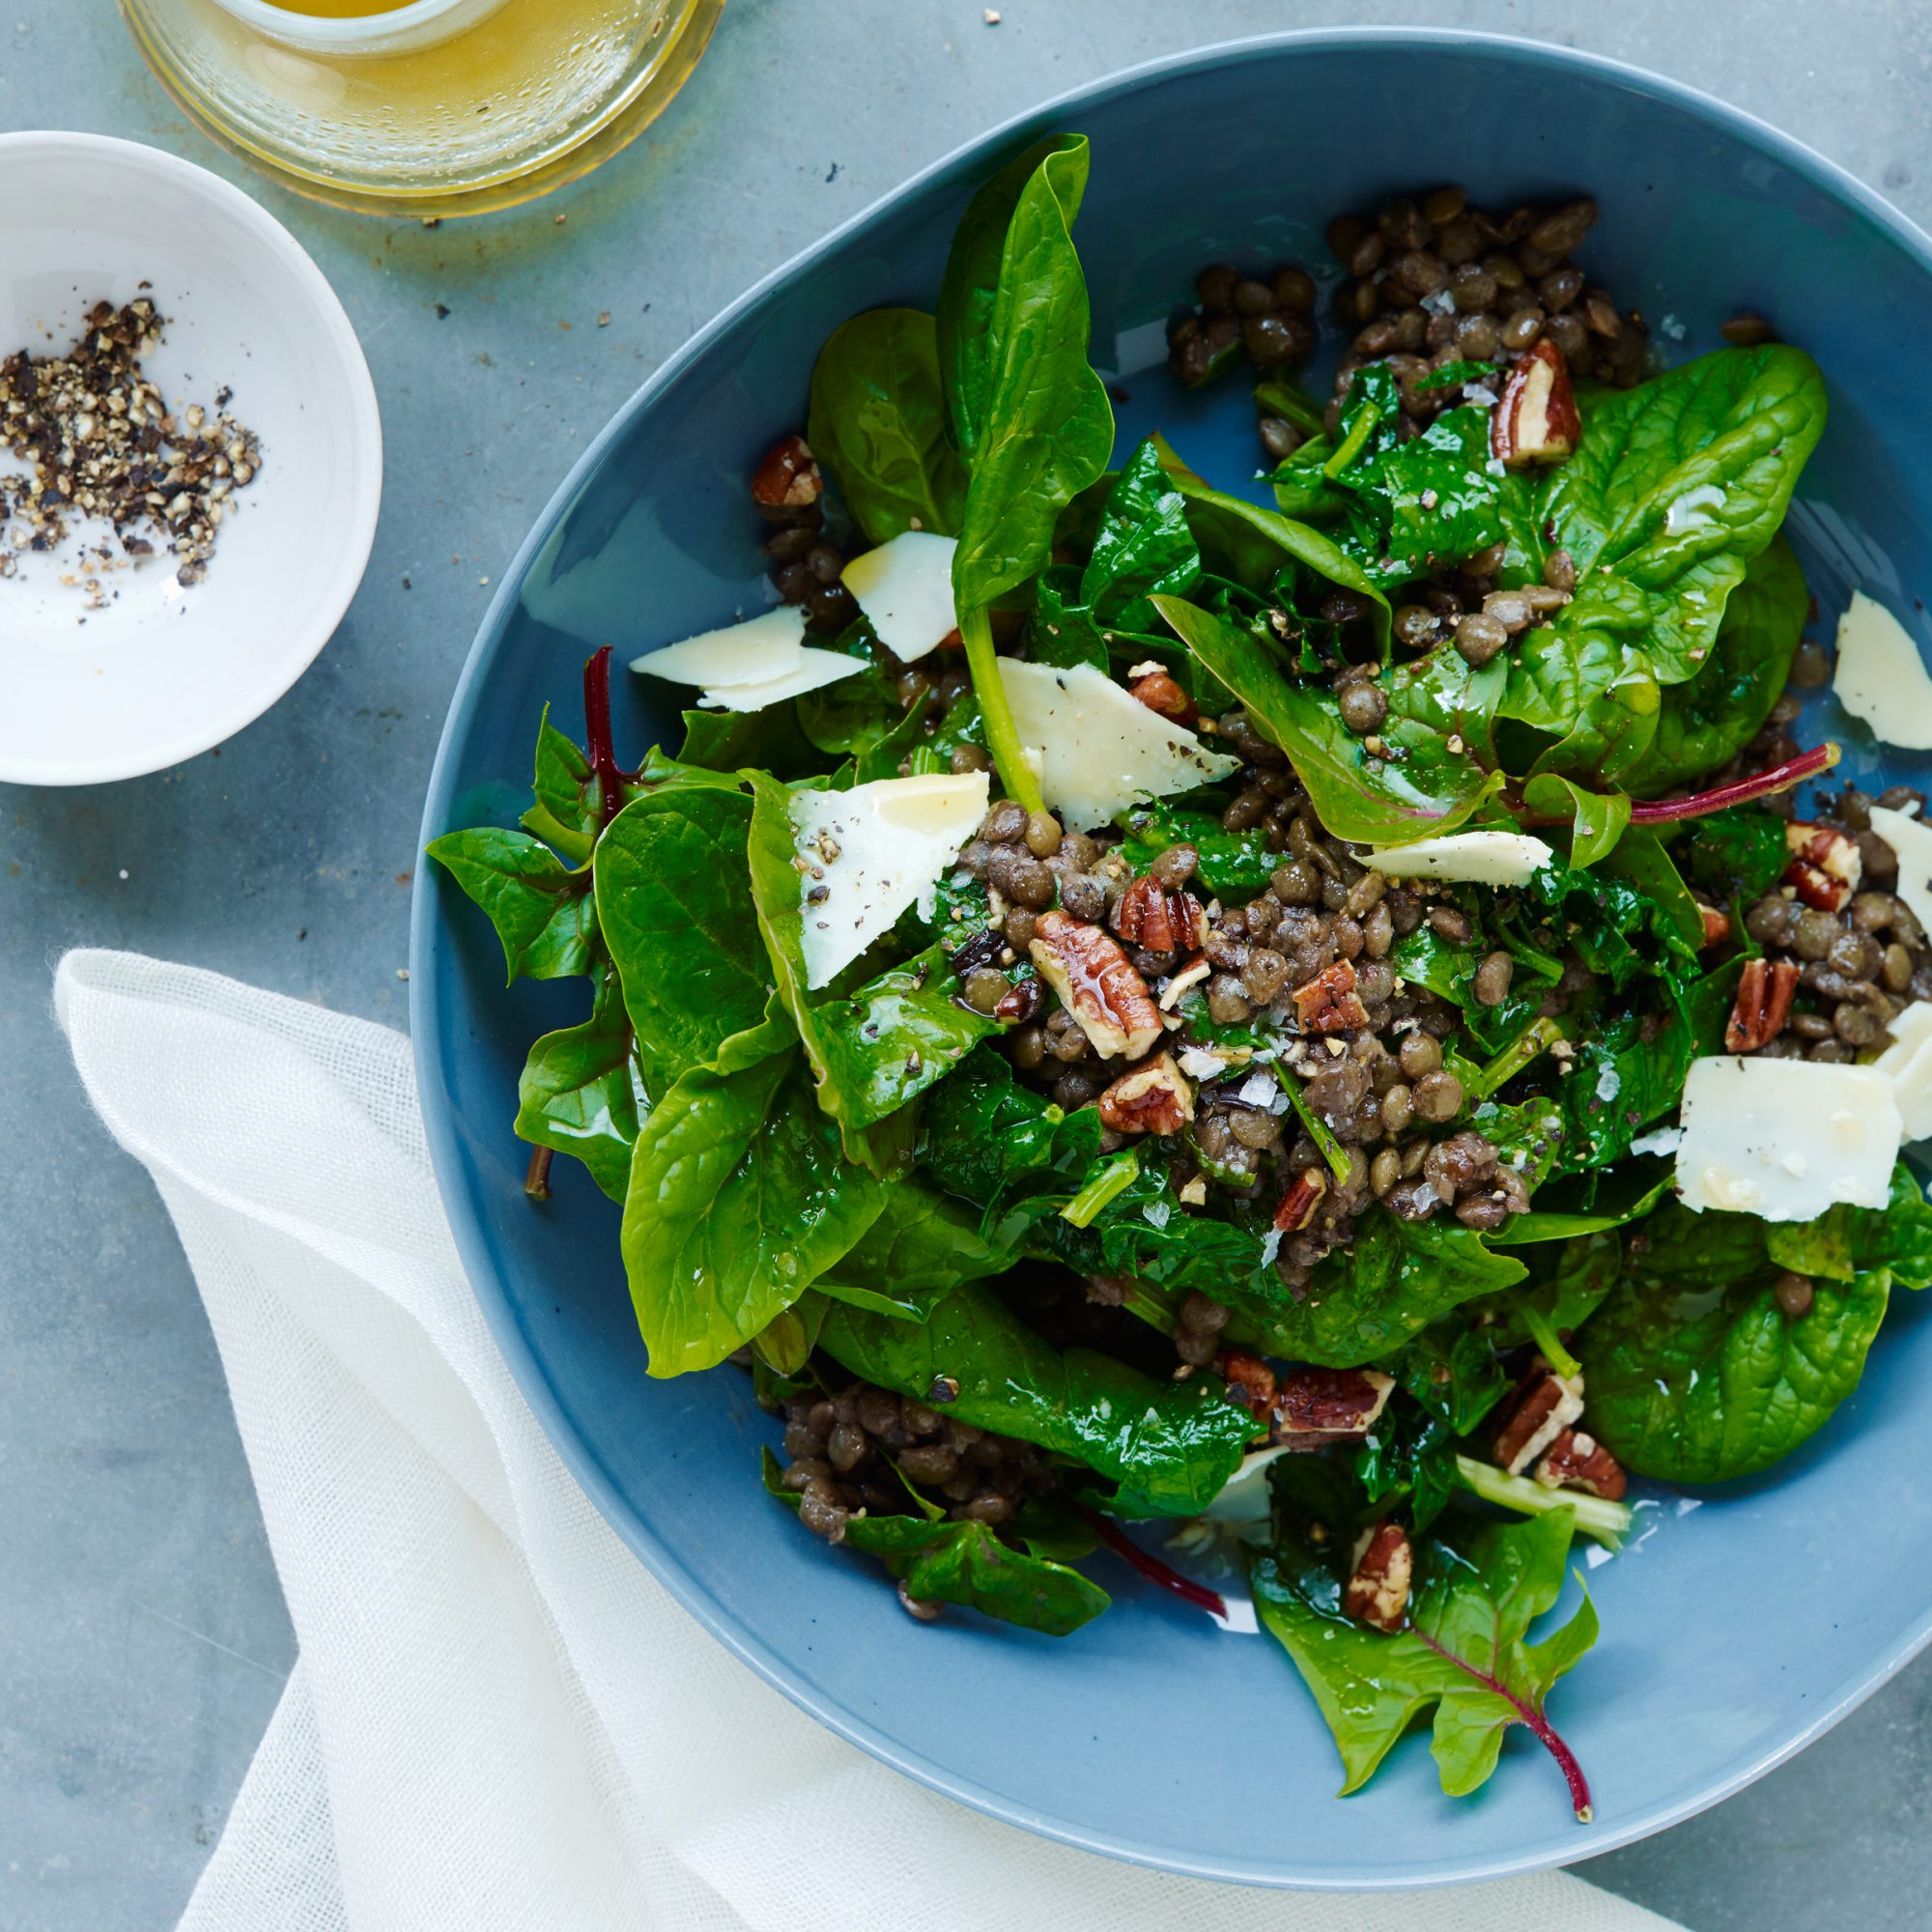 Lentil Salad with Spinach, Pecans, and Cheddar